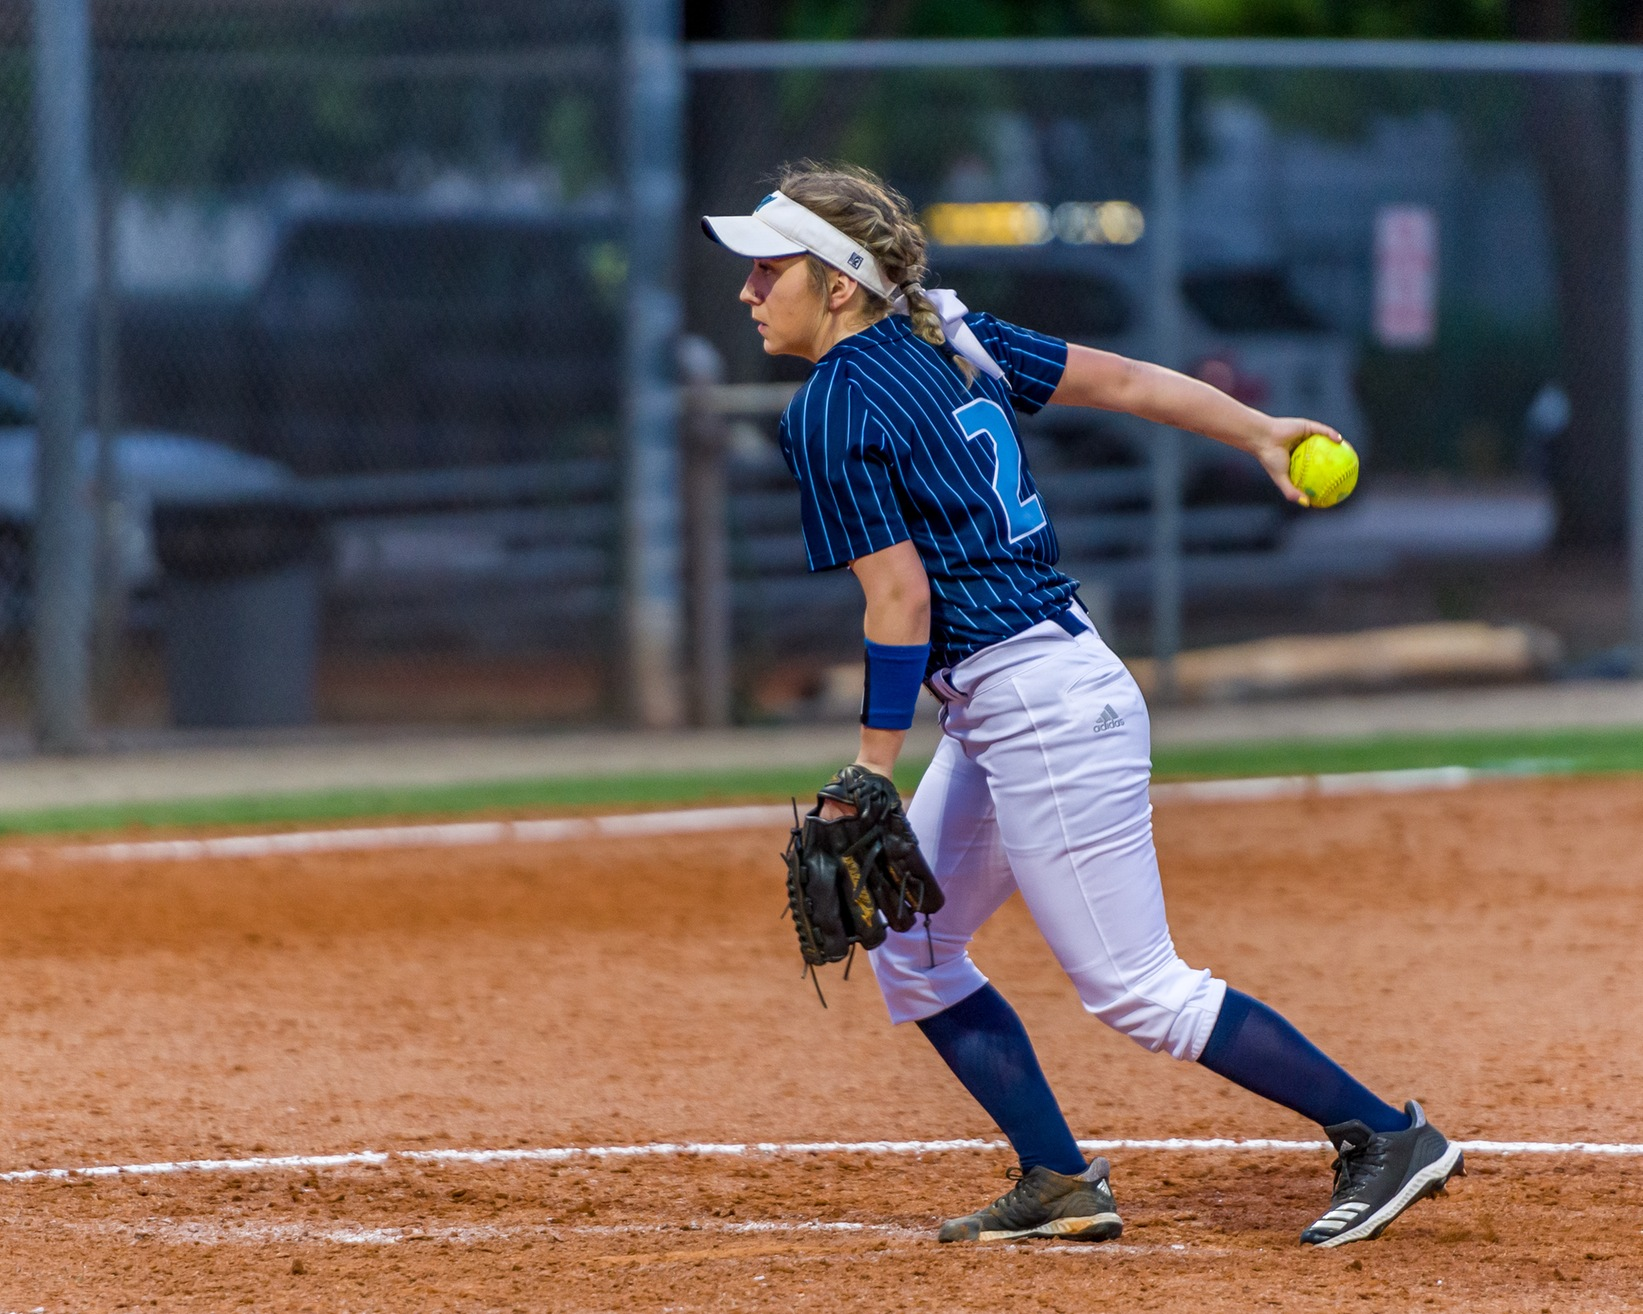 Sophomore Michaela Epp faced 25 batters in the Reivers double-header with College of Central Florida.